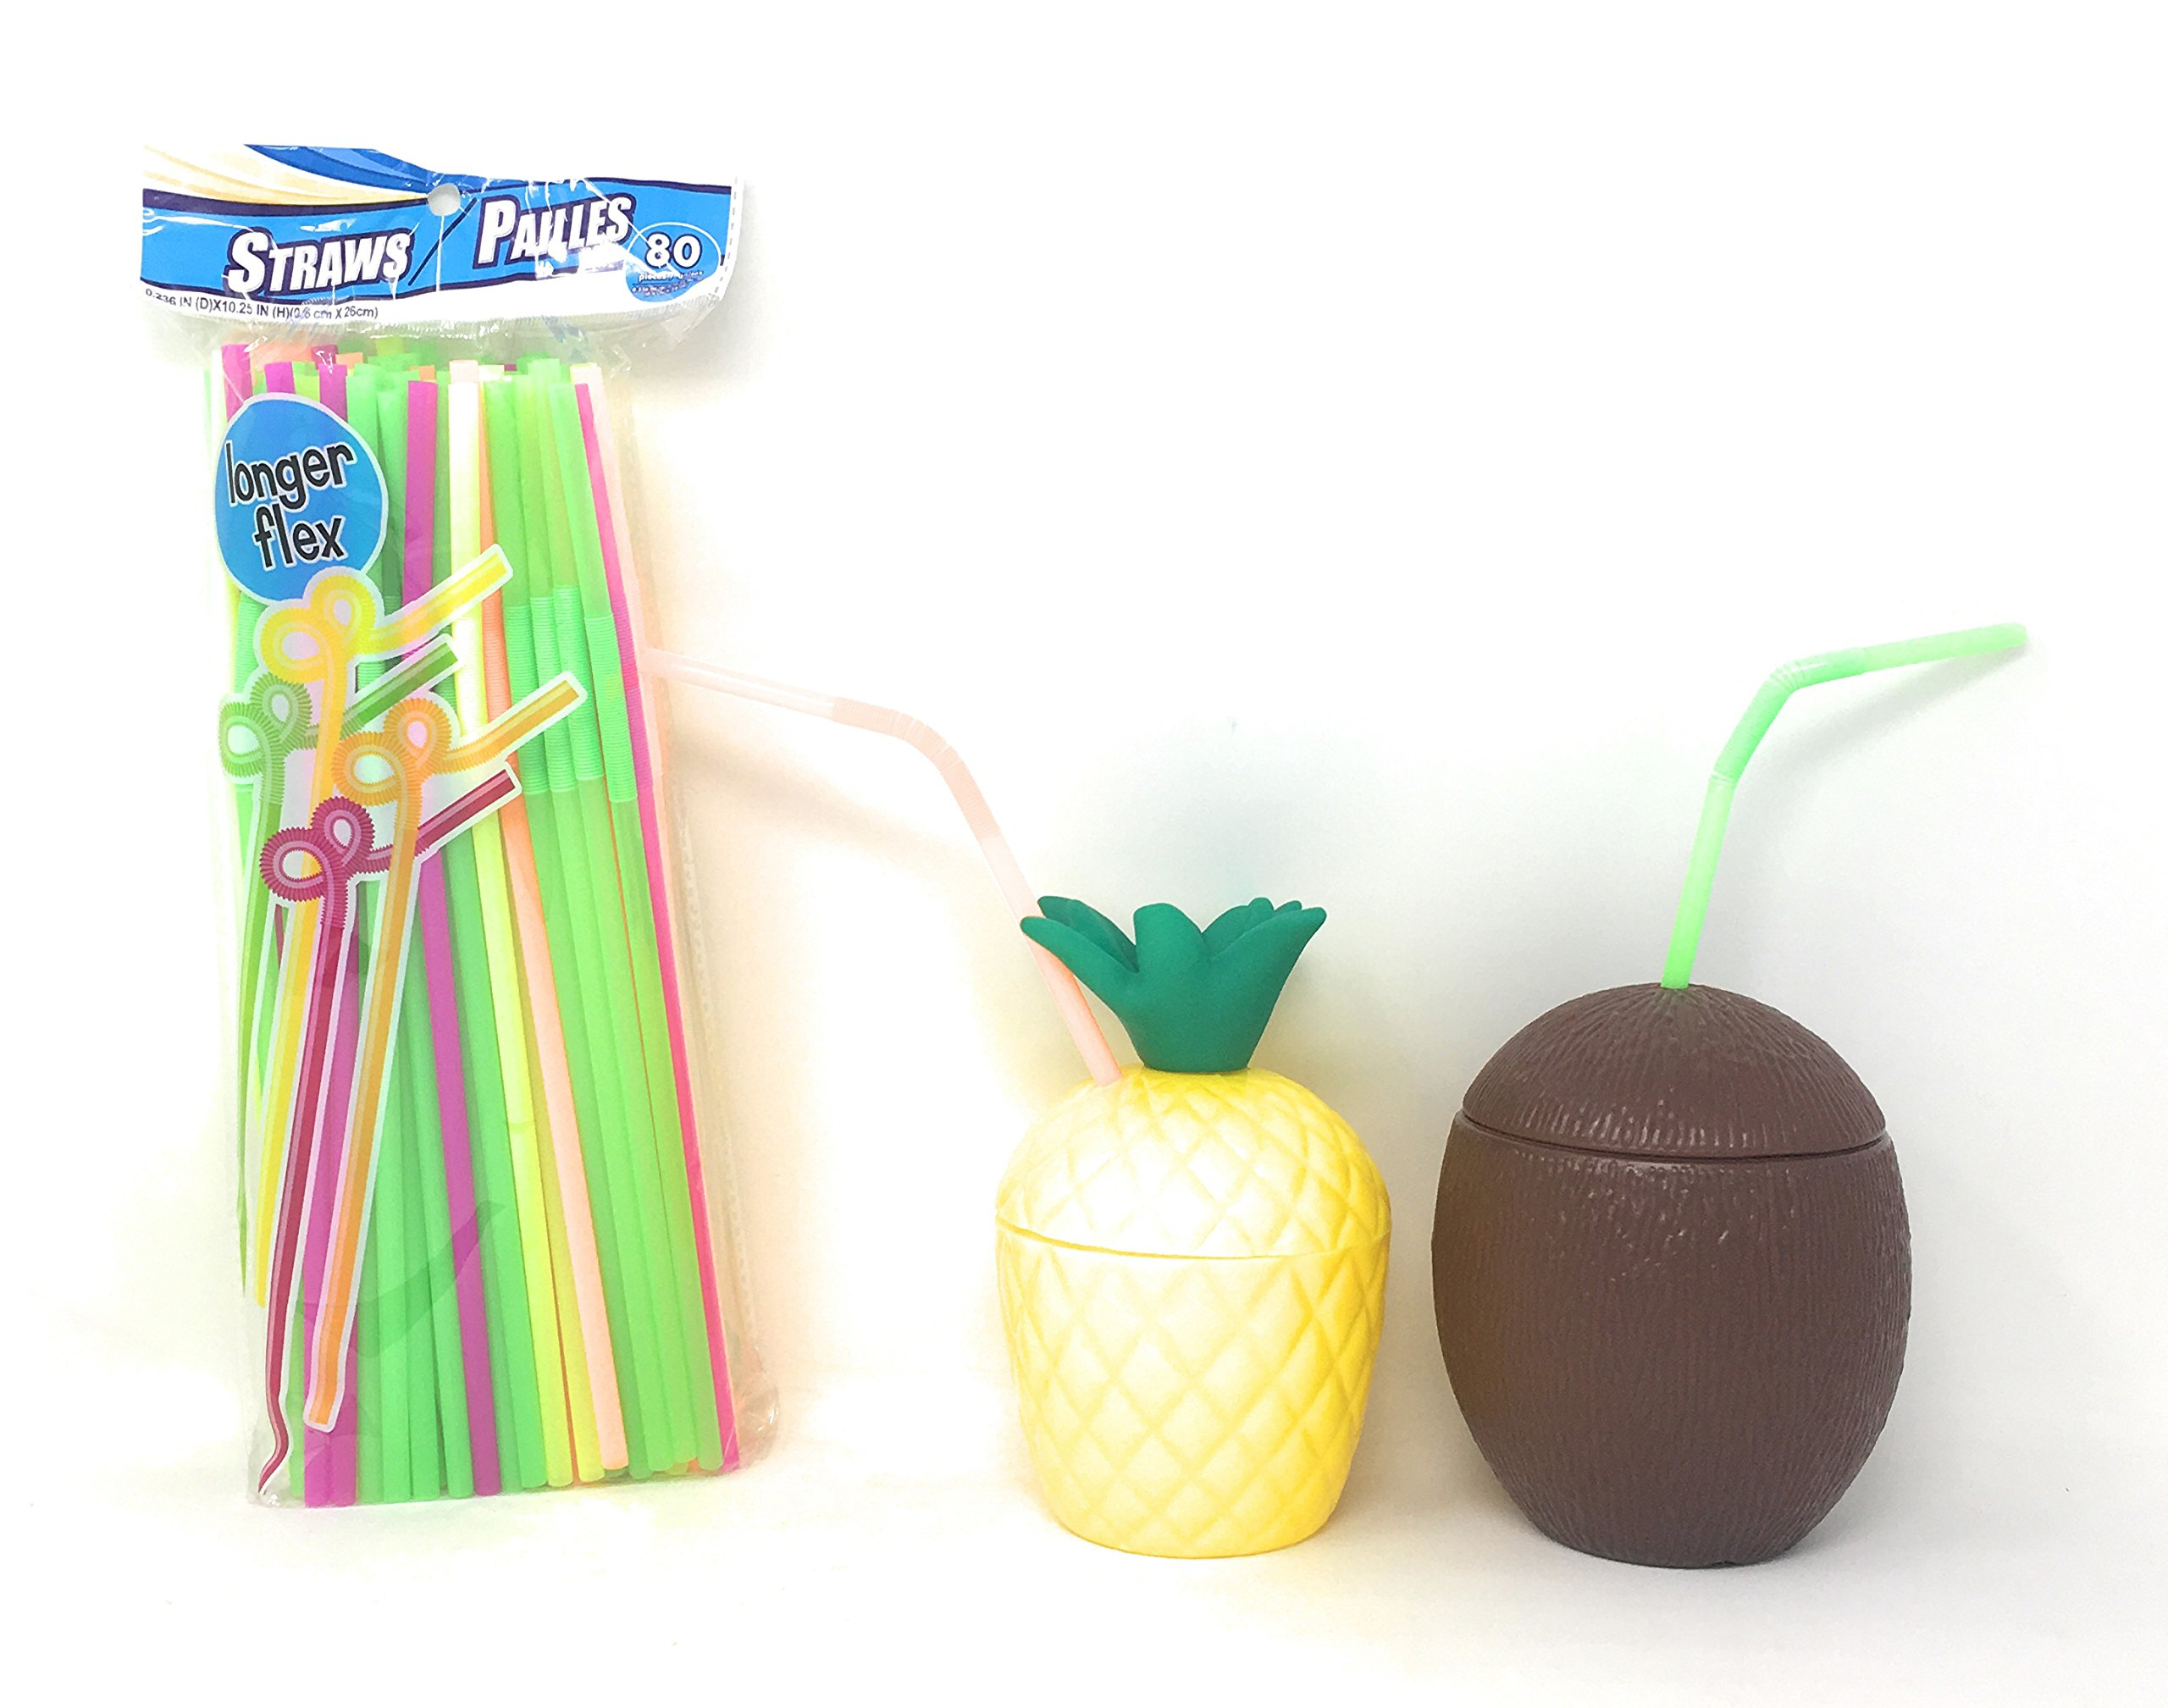 Luau Party Supplies Plastic Coconut and Pineapple Cups For Hawaiian Luau Beach Tiki Themed Parties With pack of 80 Neon Flex Straws– 6 of Each (12 Pack)